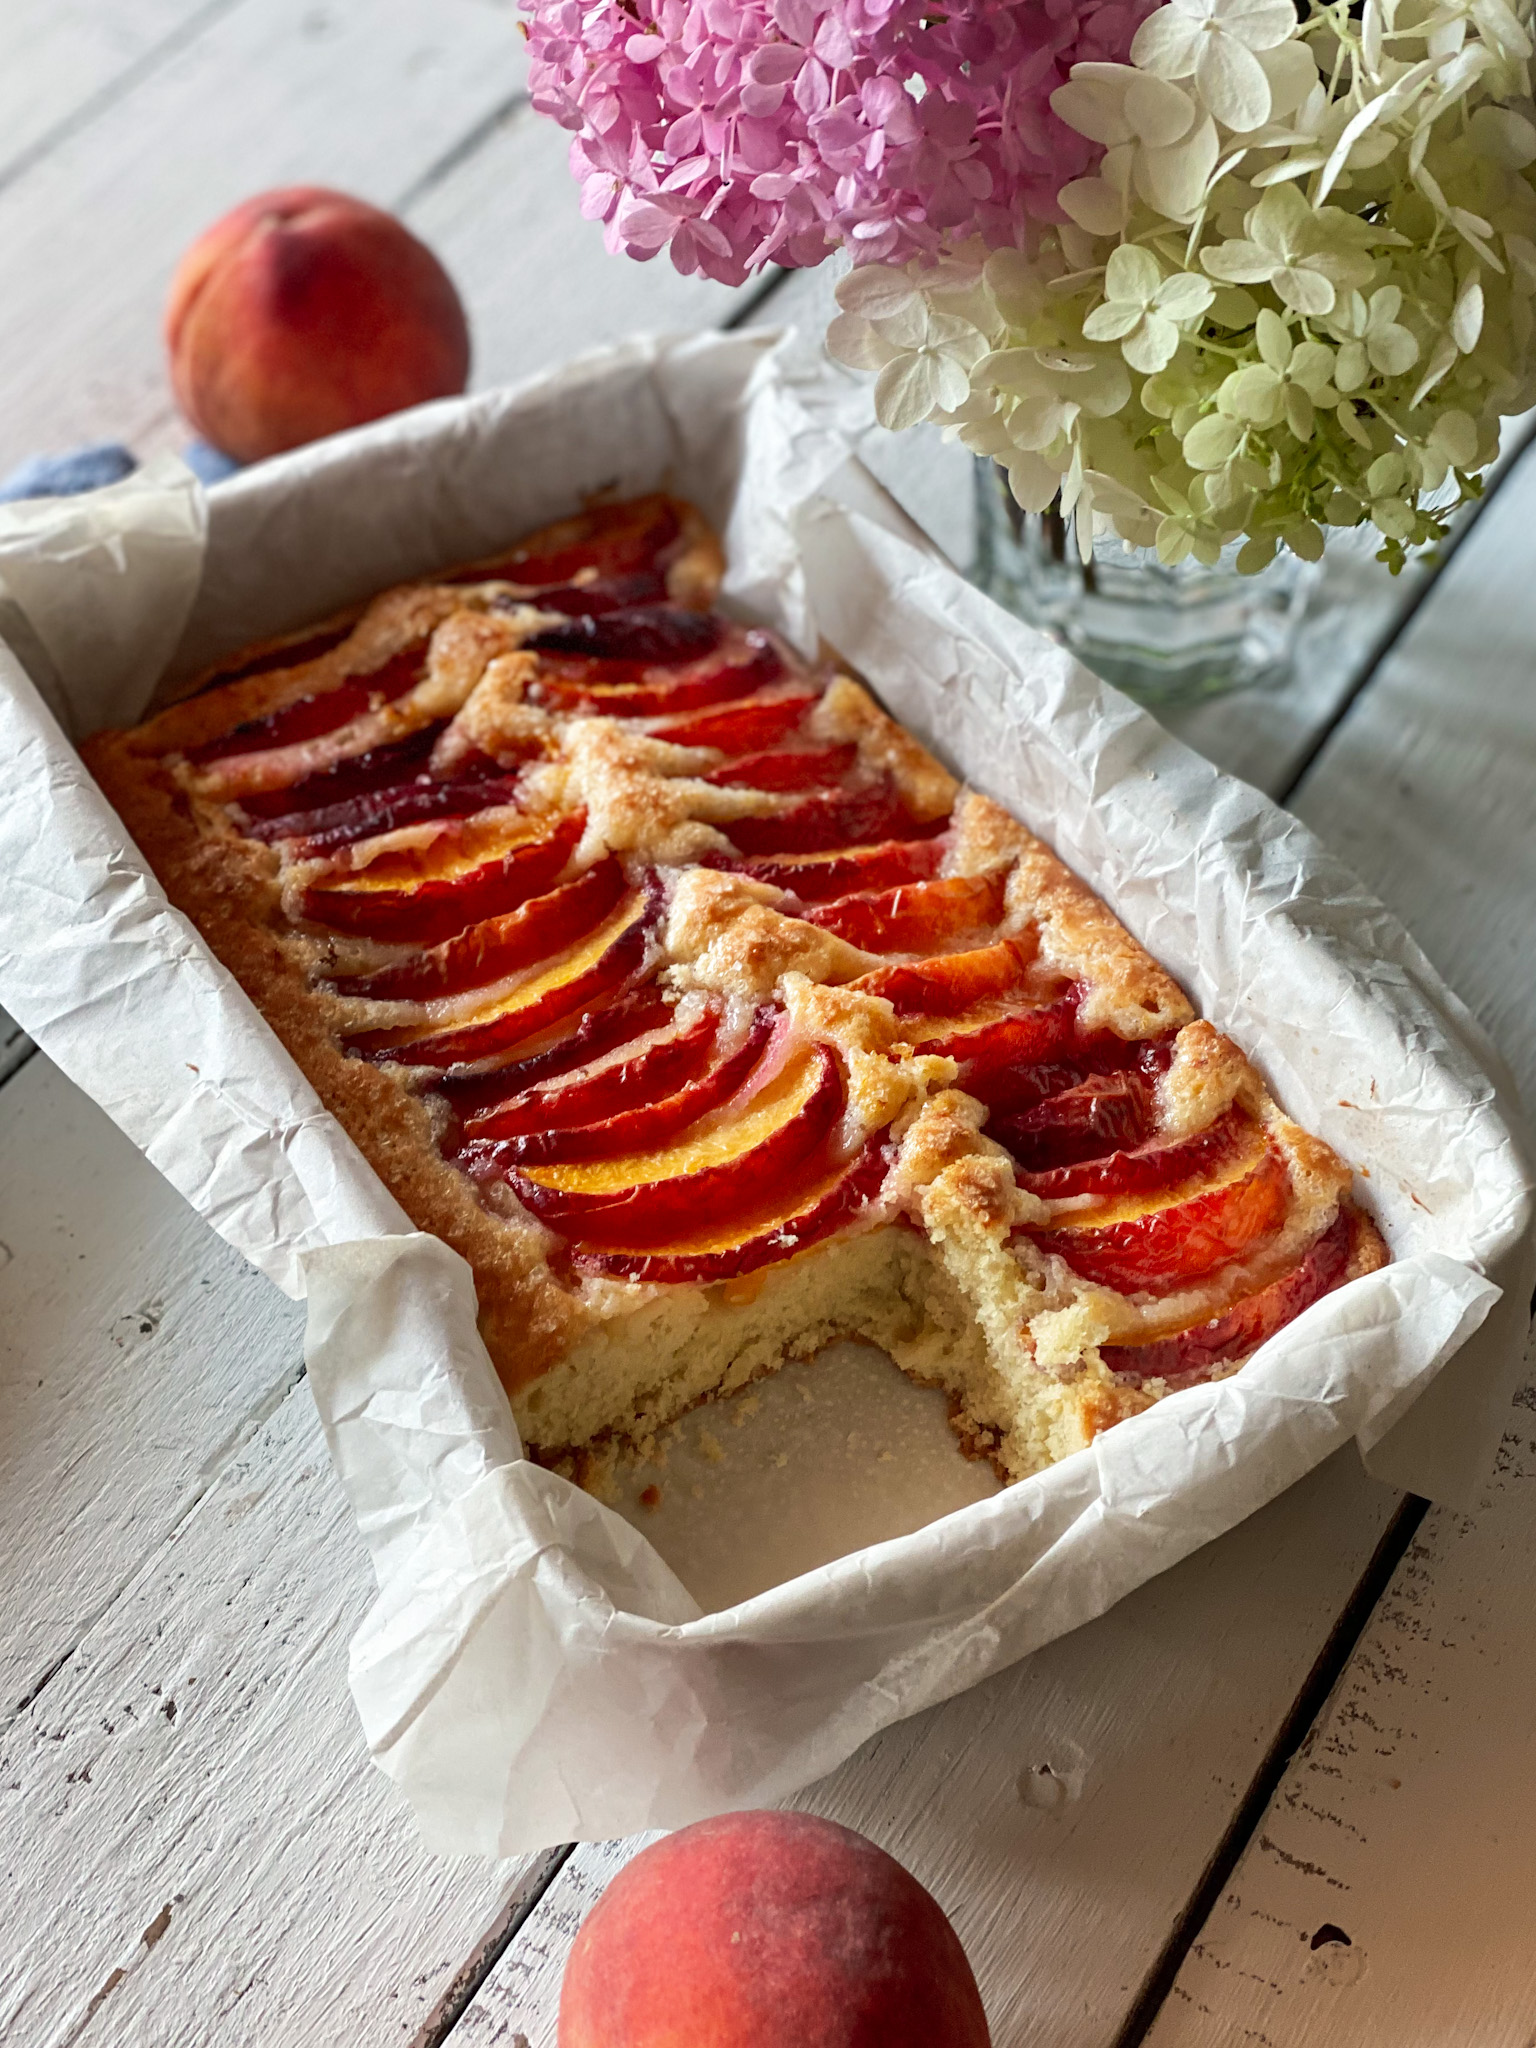 Peach topped cake with a slice out and peaches and flowers nearby